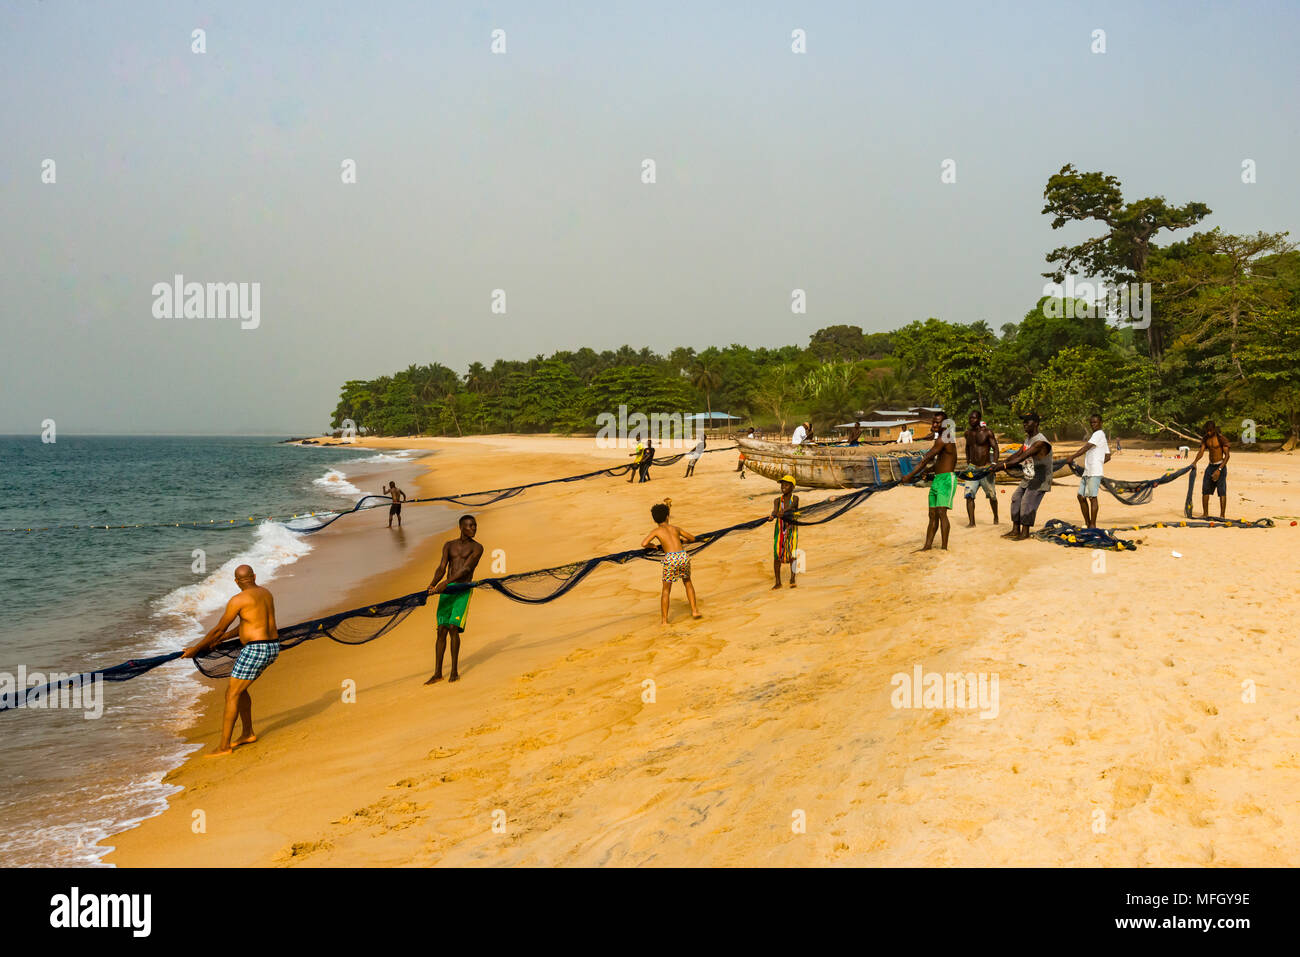 Local fishermen pulling their nets on a beach in Robertsport, Liberia, West Africa, Africa - Stock Image